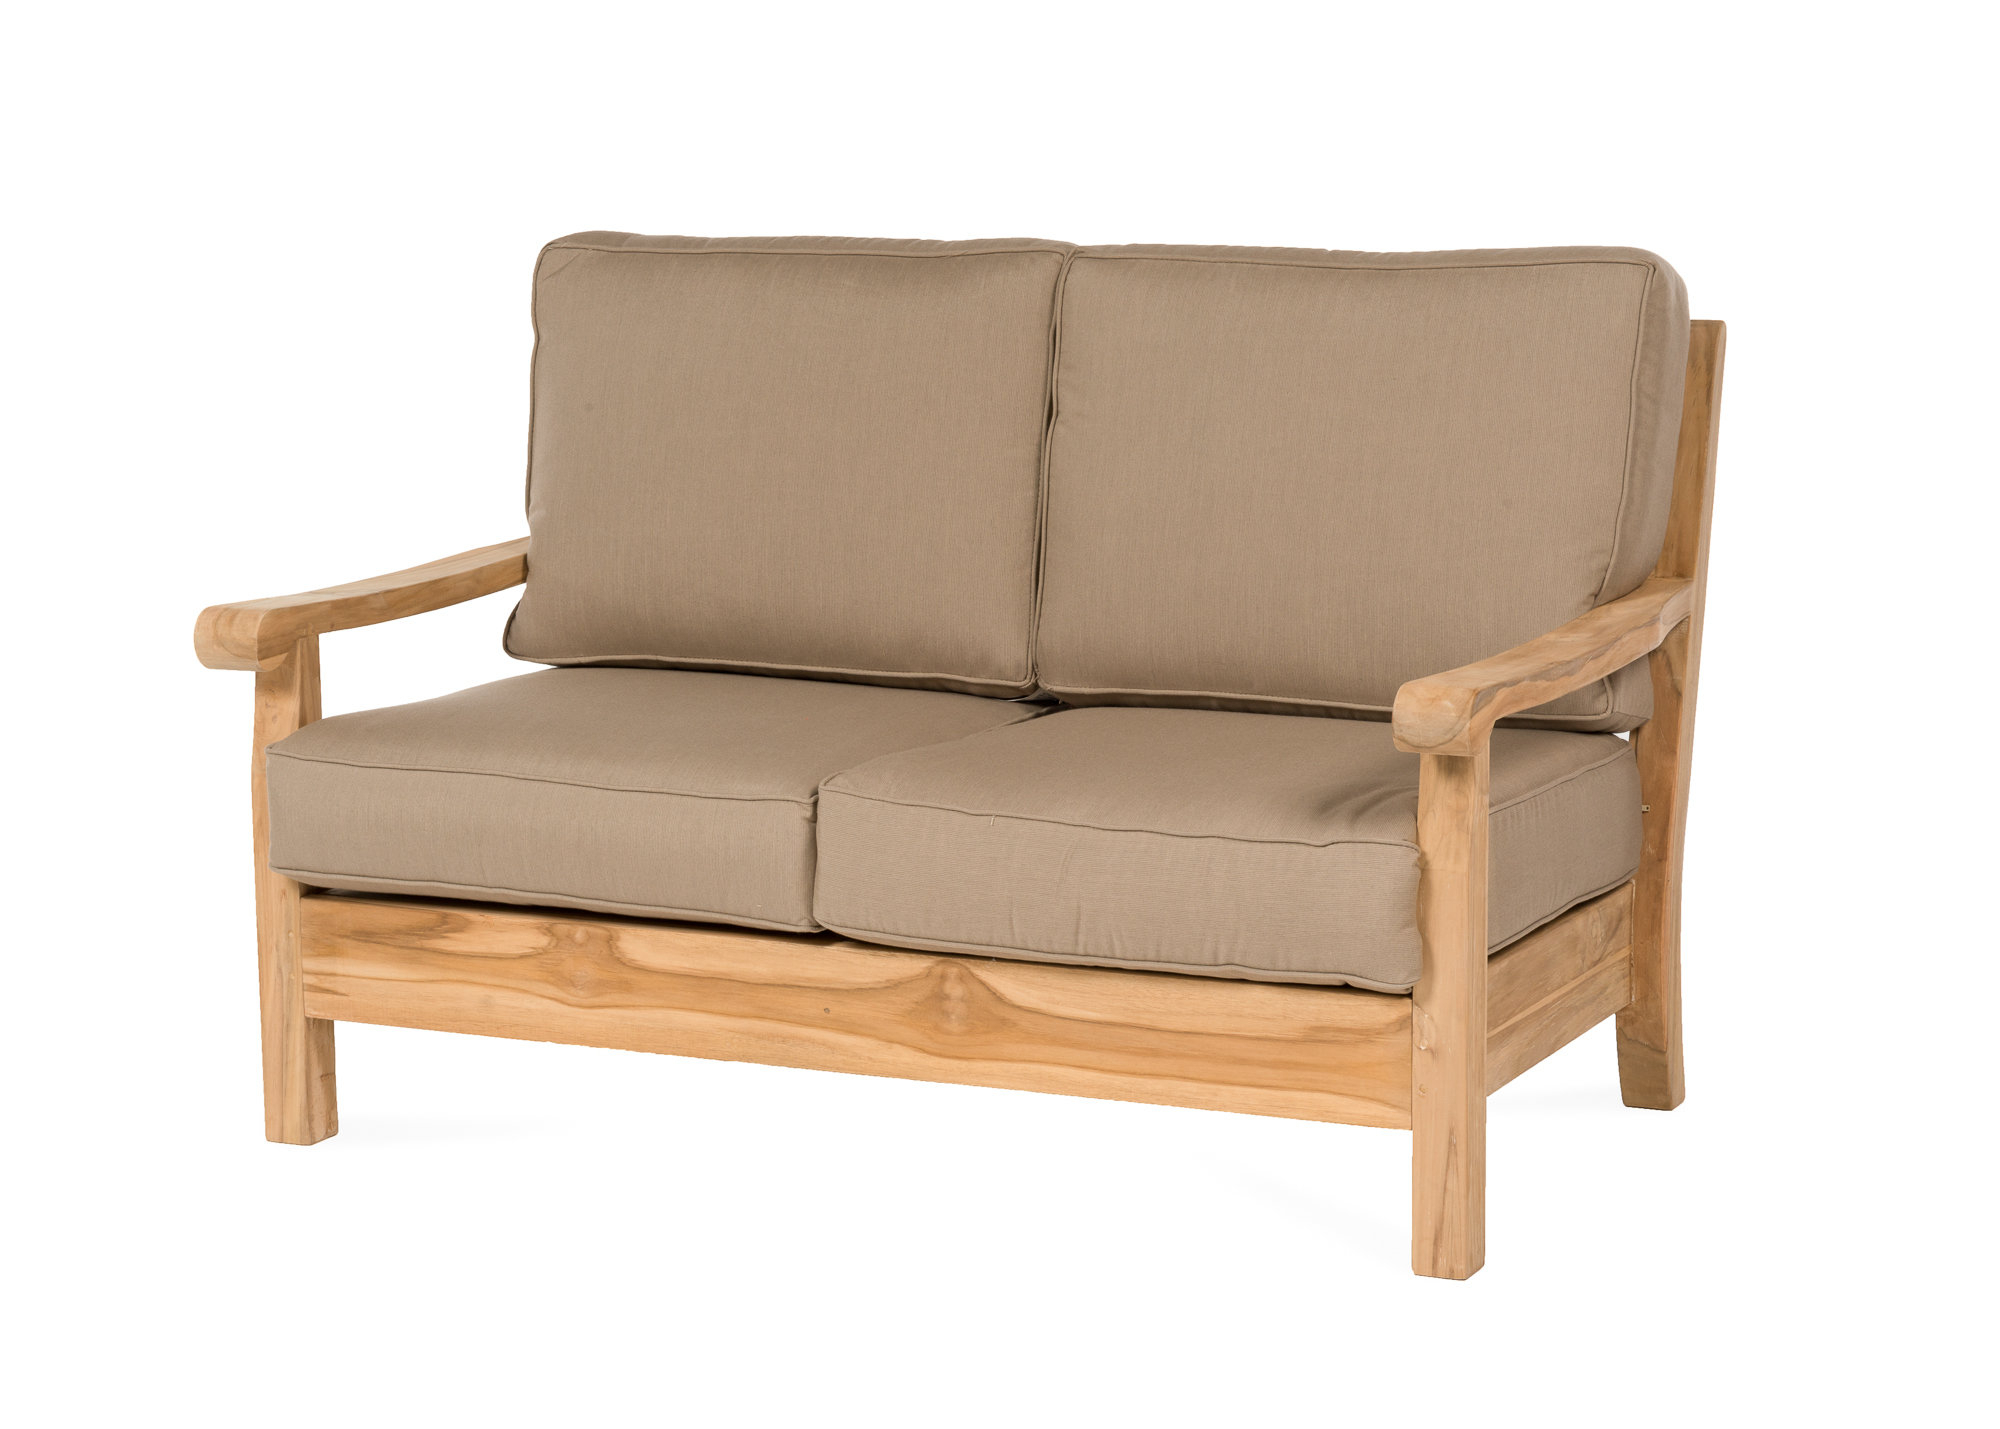 Lakeland Teak Loveseats With Cushions For Recent Chasity Teak Loveseat With Cushion (View 6 of 20)